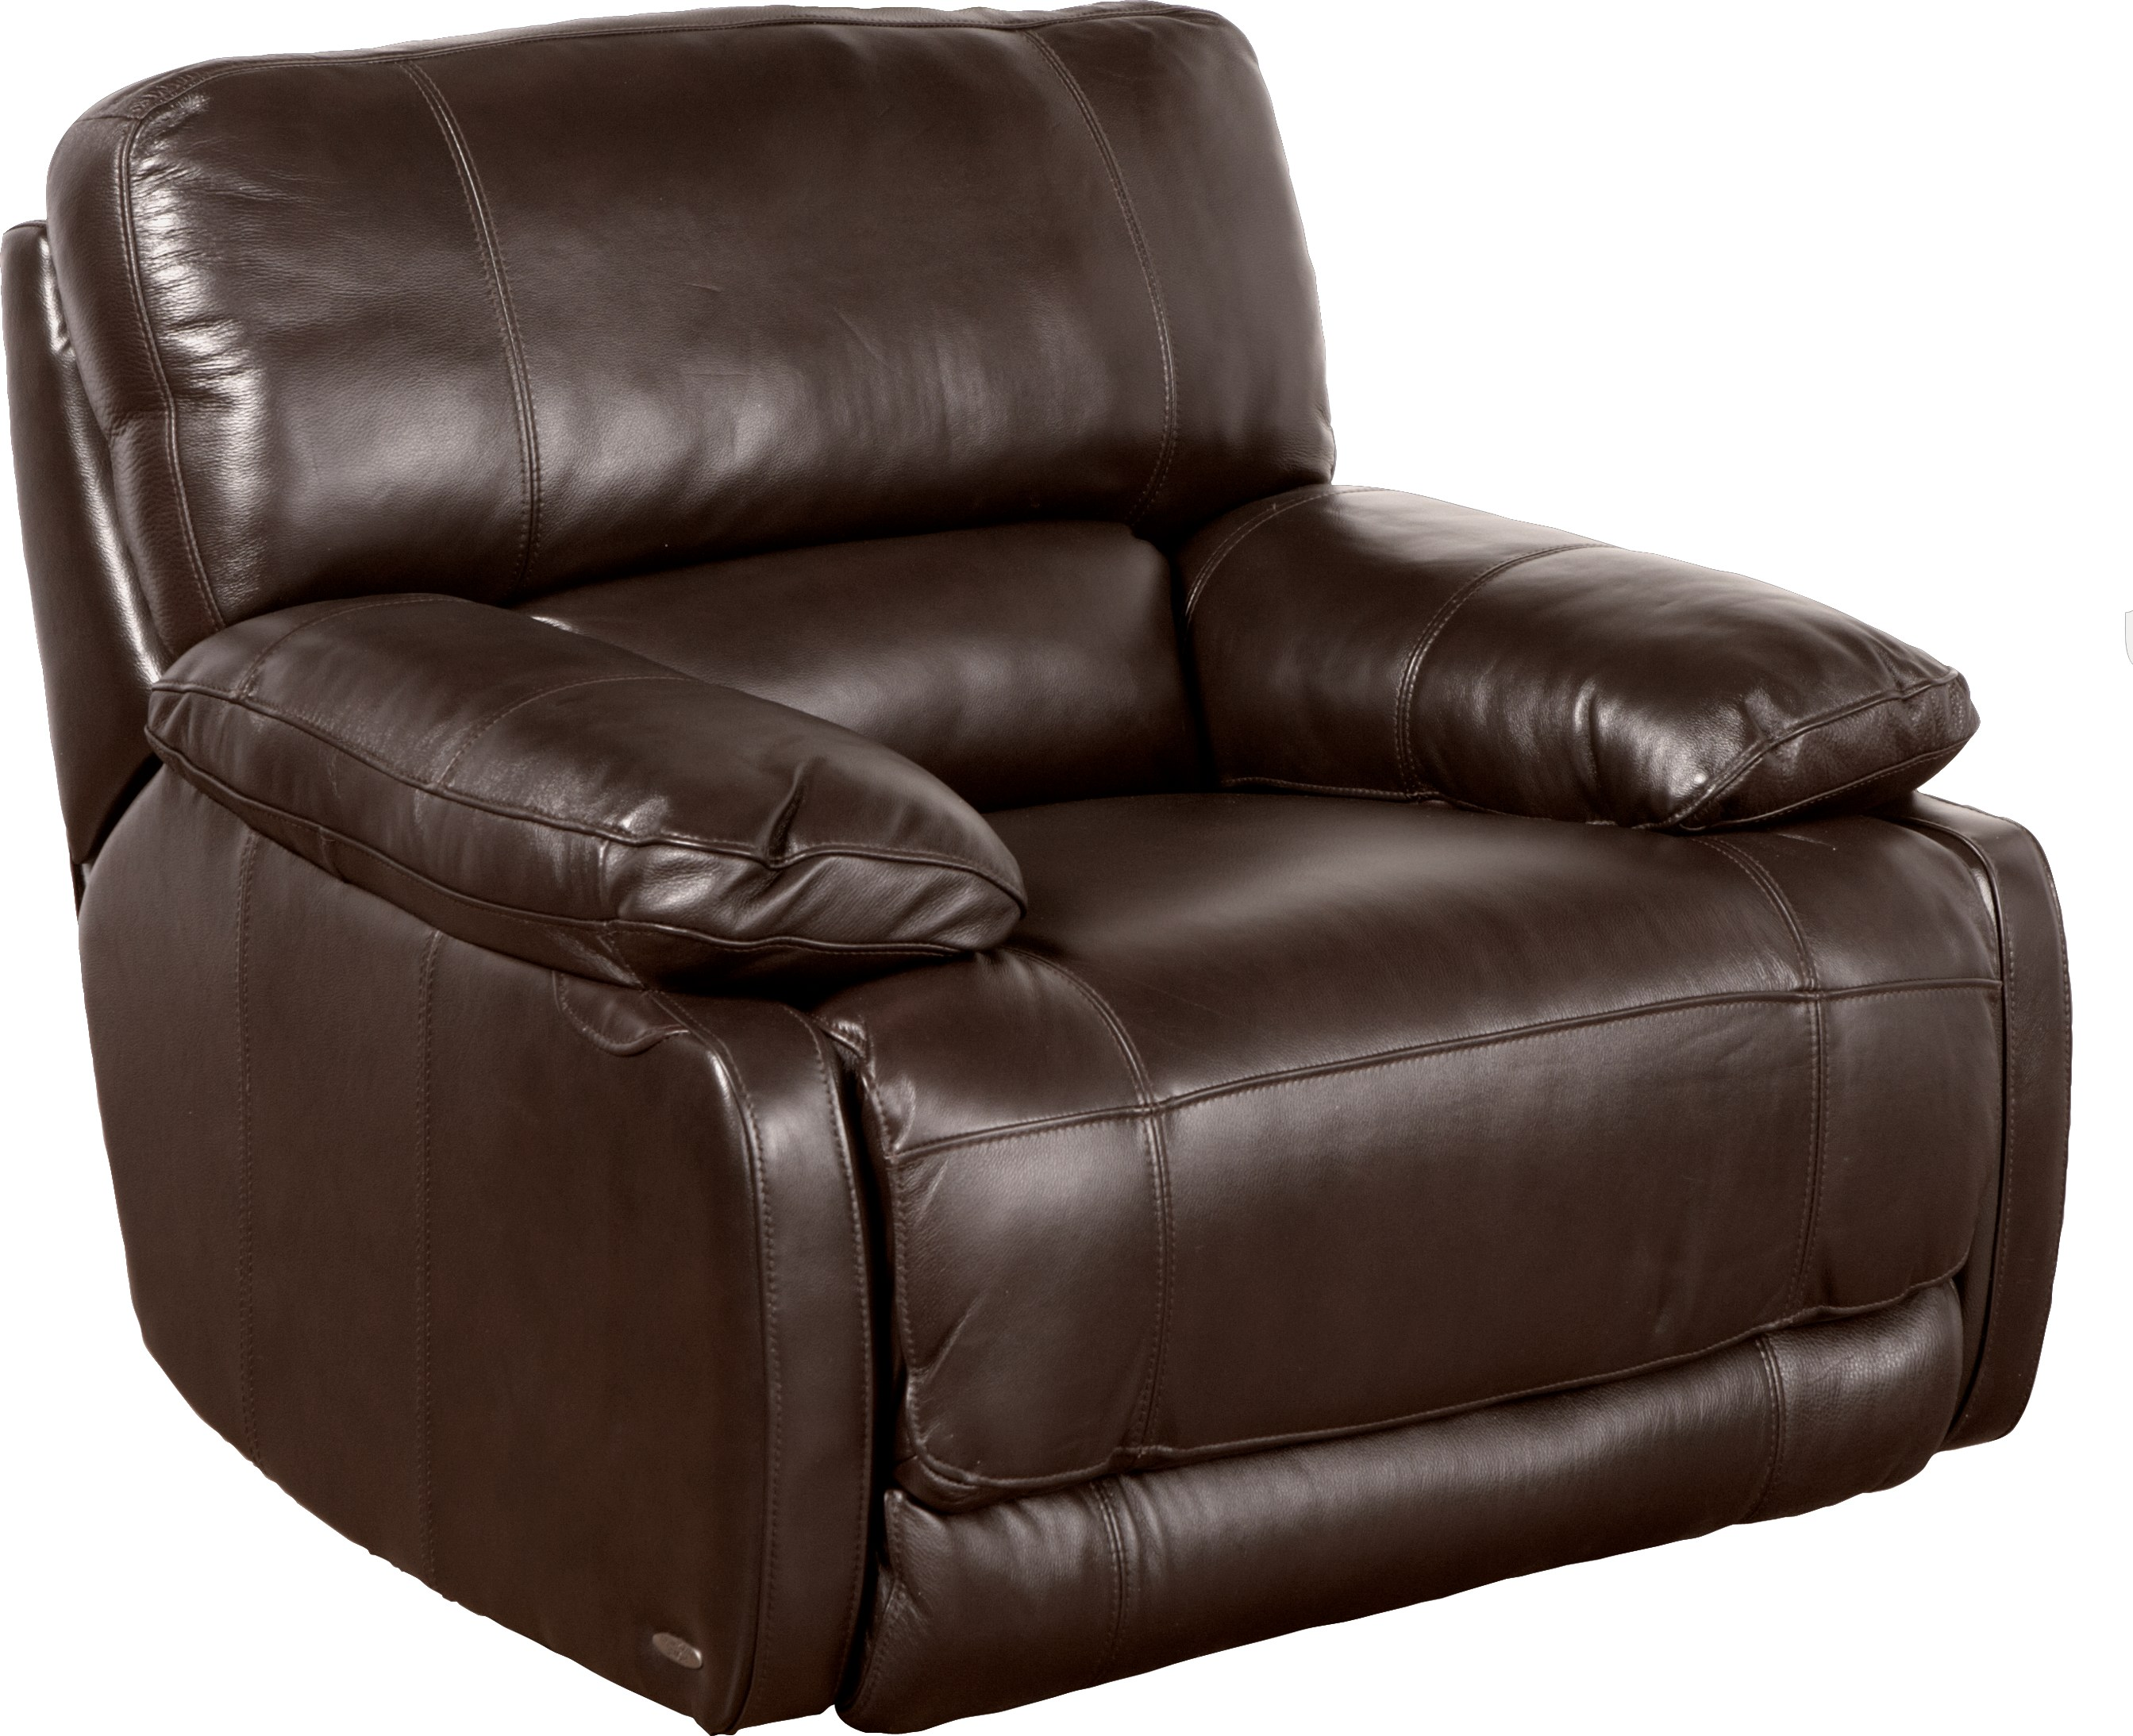 Cindy Crawford Home Auburn Hills Brown Leather Power Recliner - Recliners  (Brown)